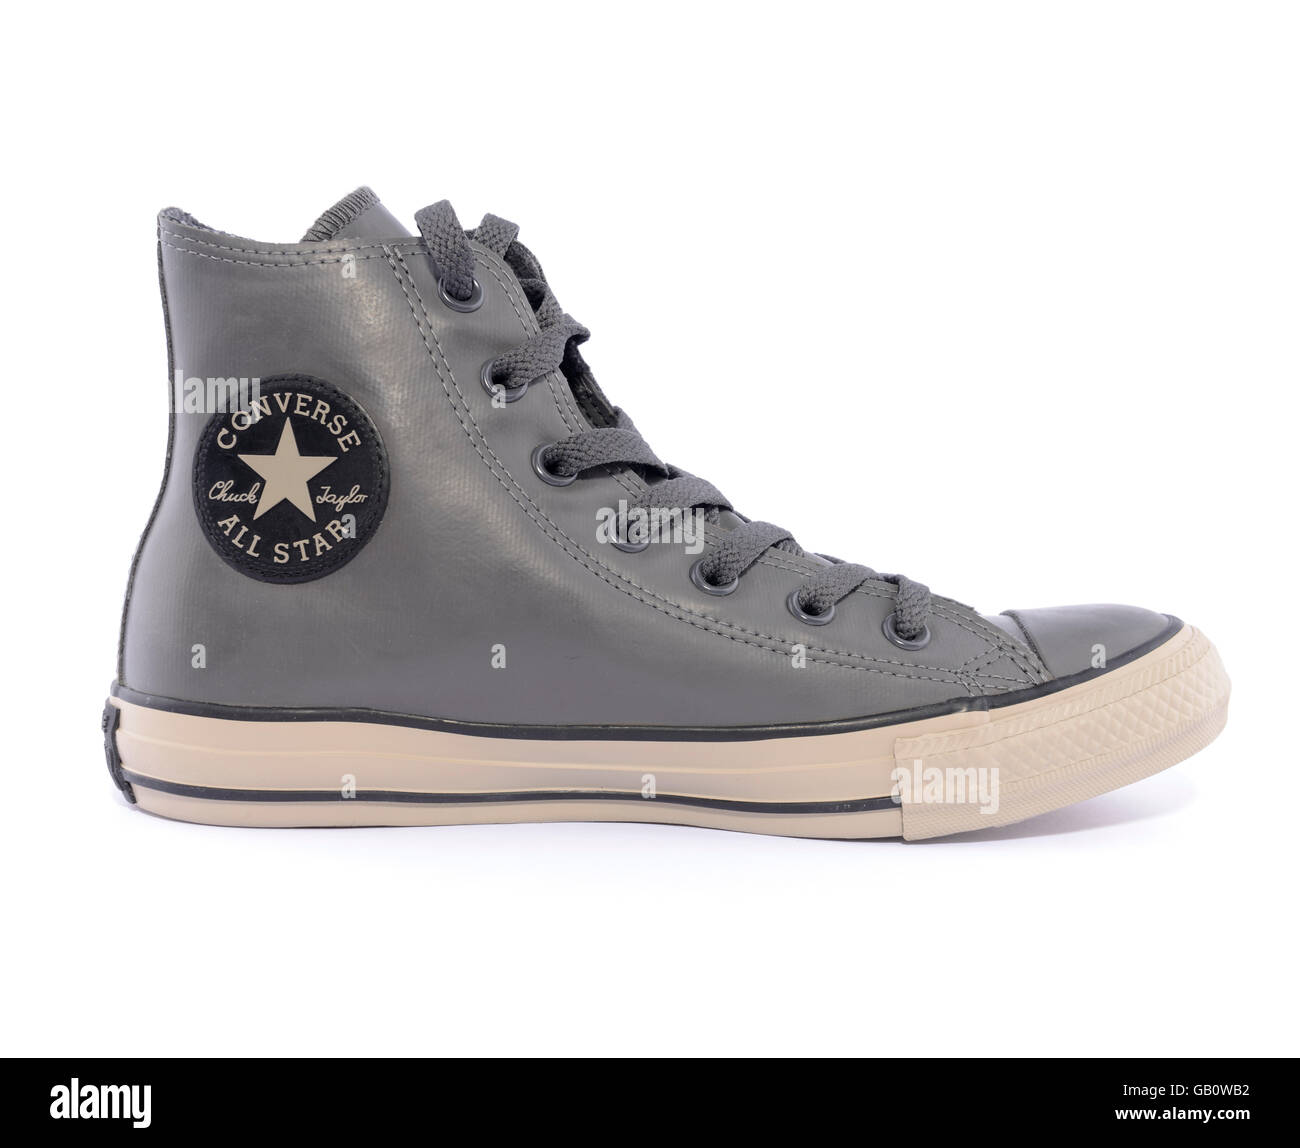 converse all star rubber